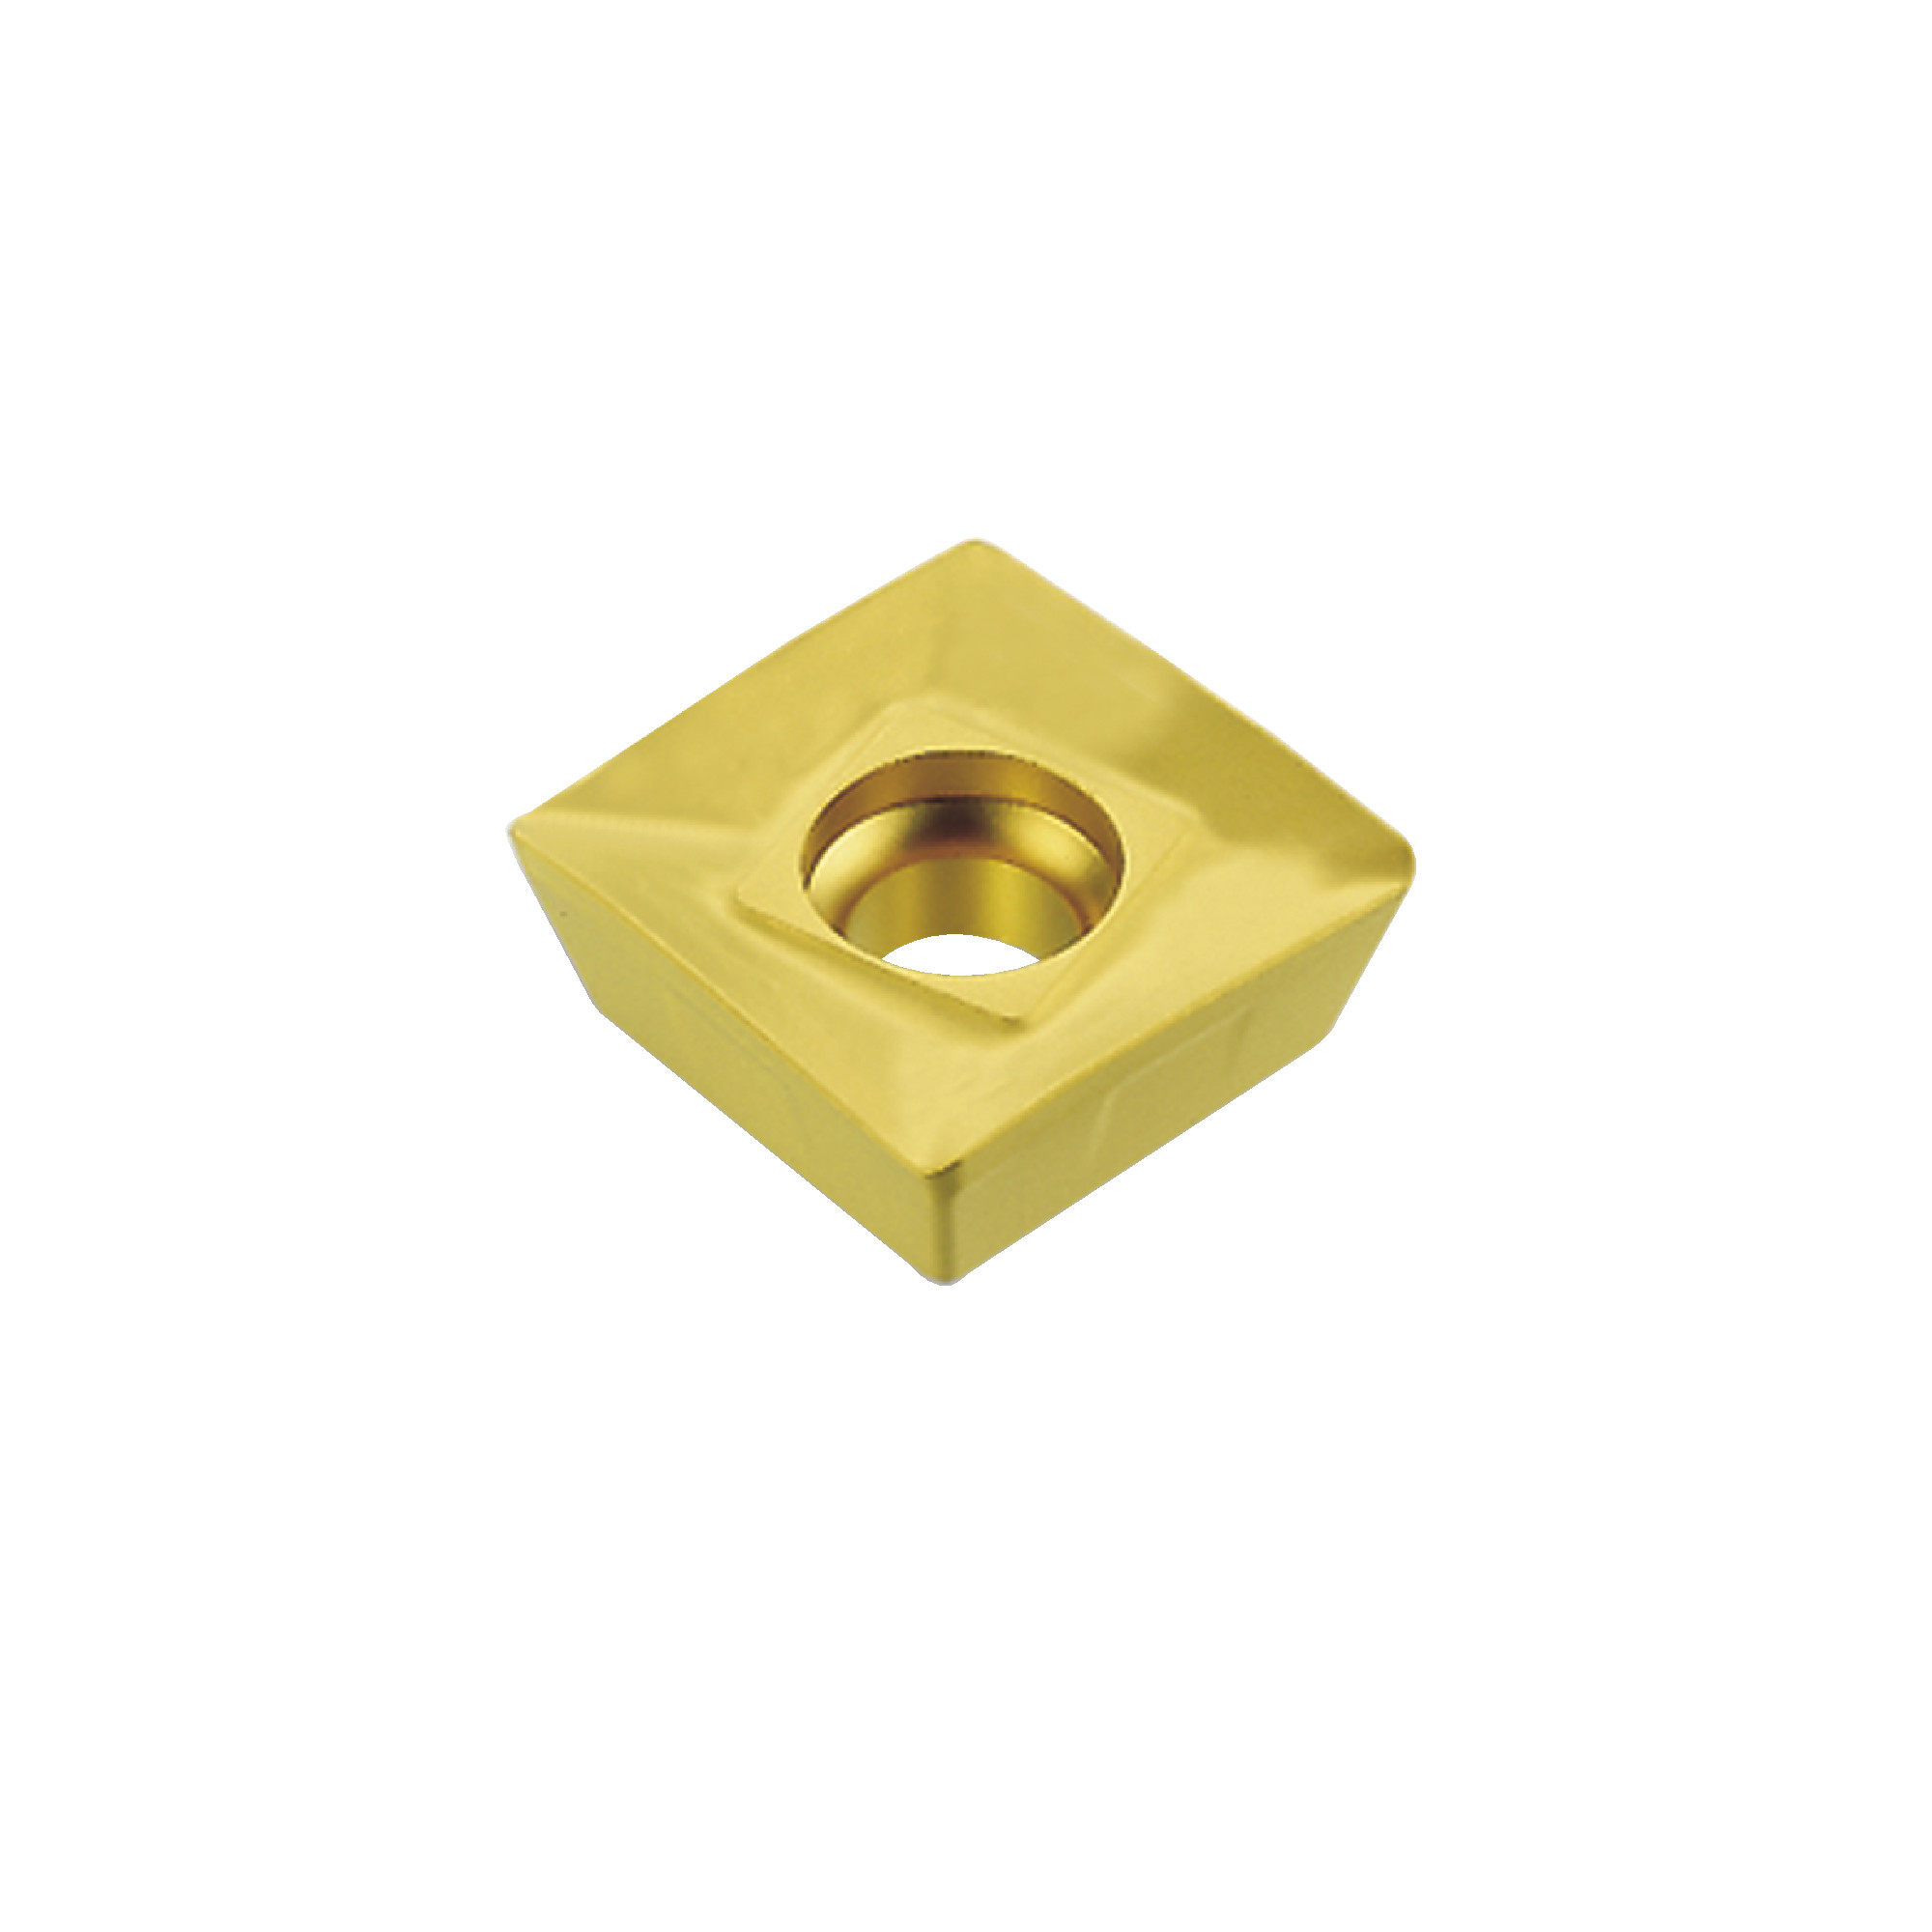 ISCAR - SDMT1205PDR-HQ-M IC908 Square / INDEXABLE Carbide MILLING INSERT